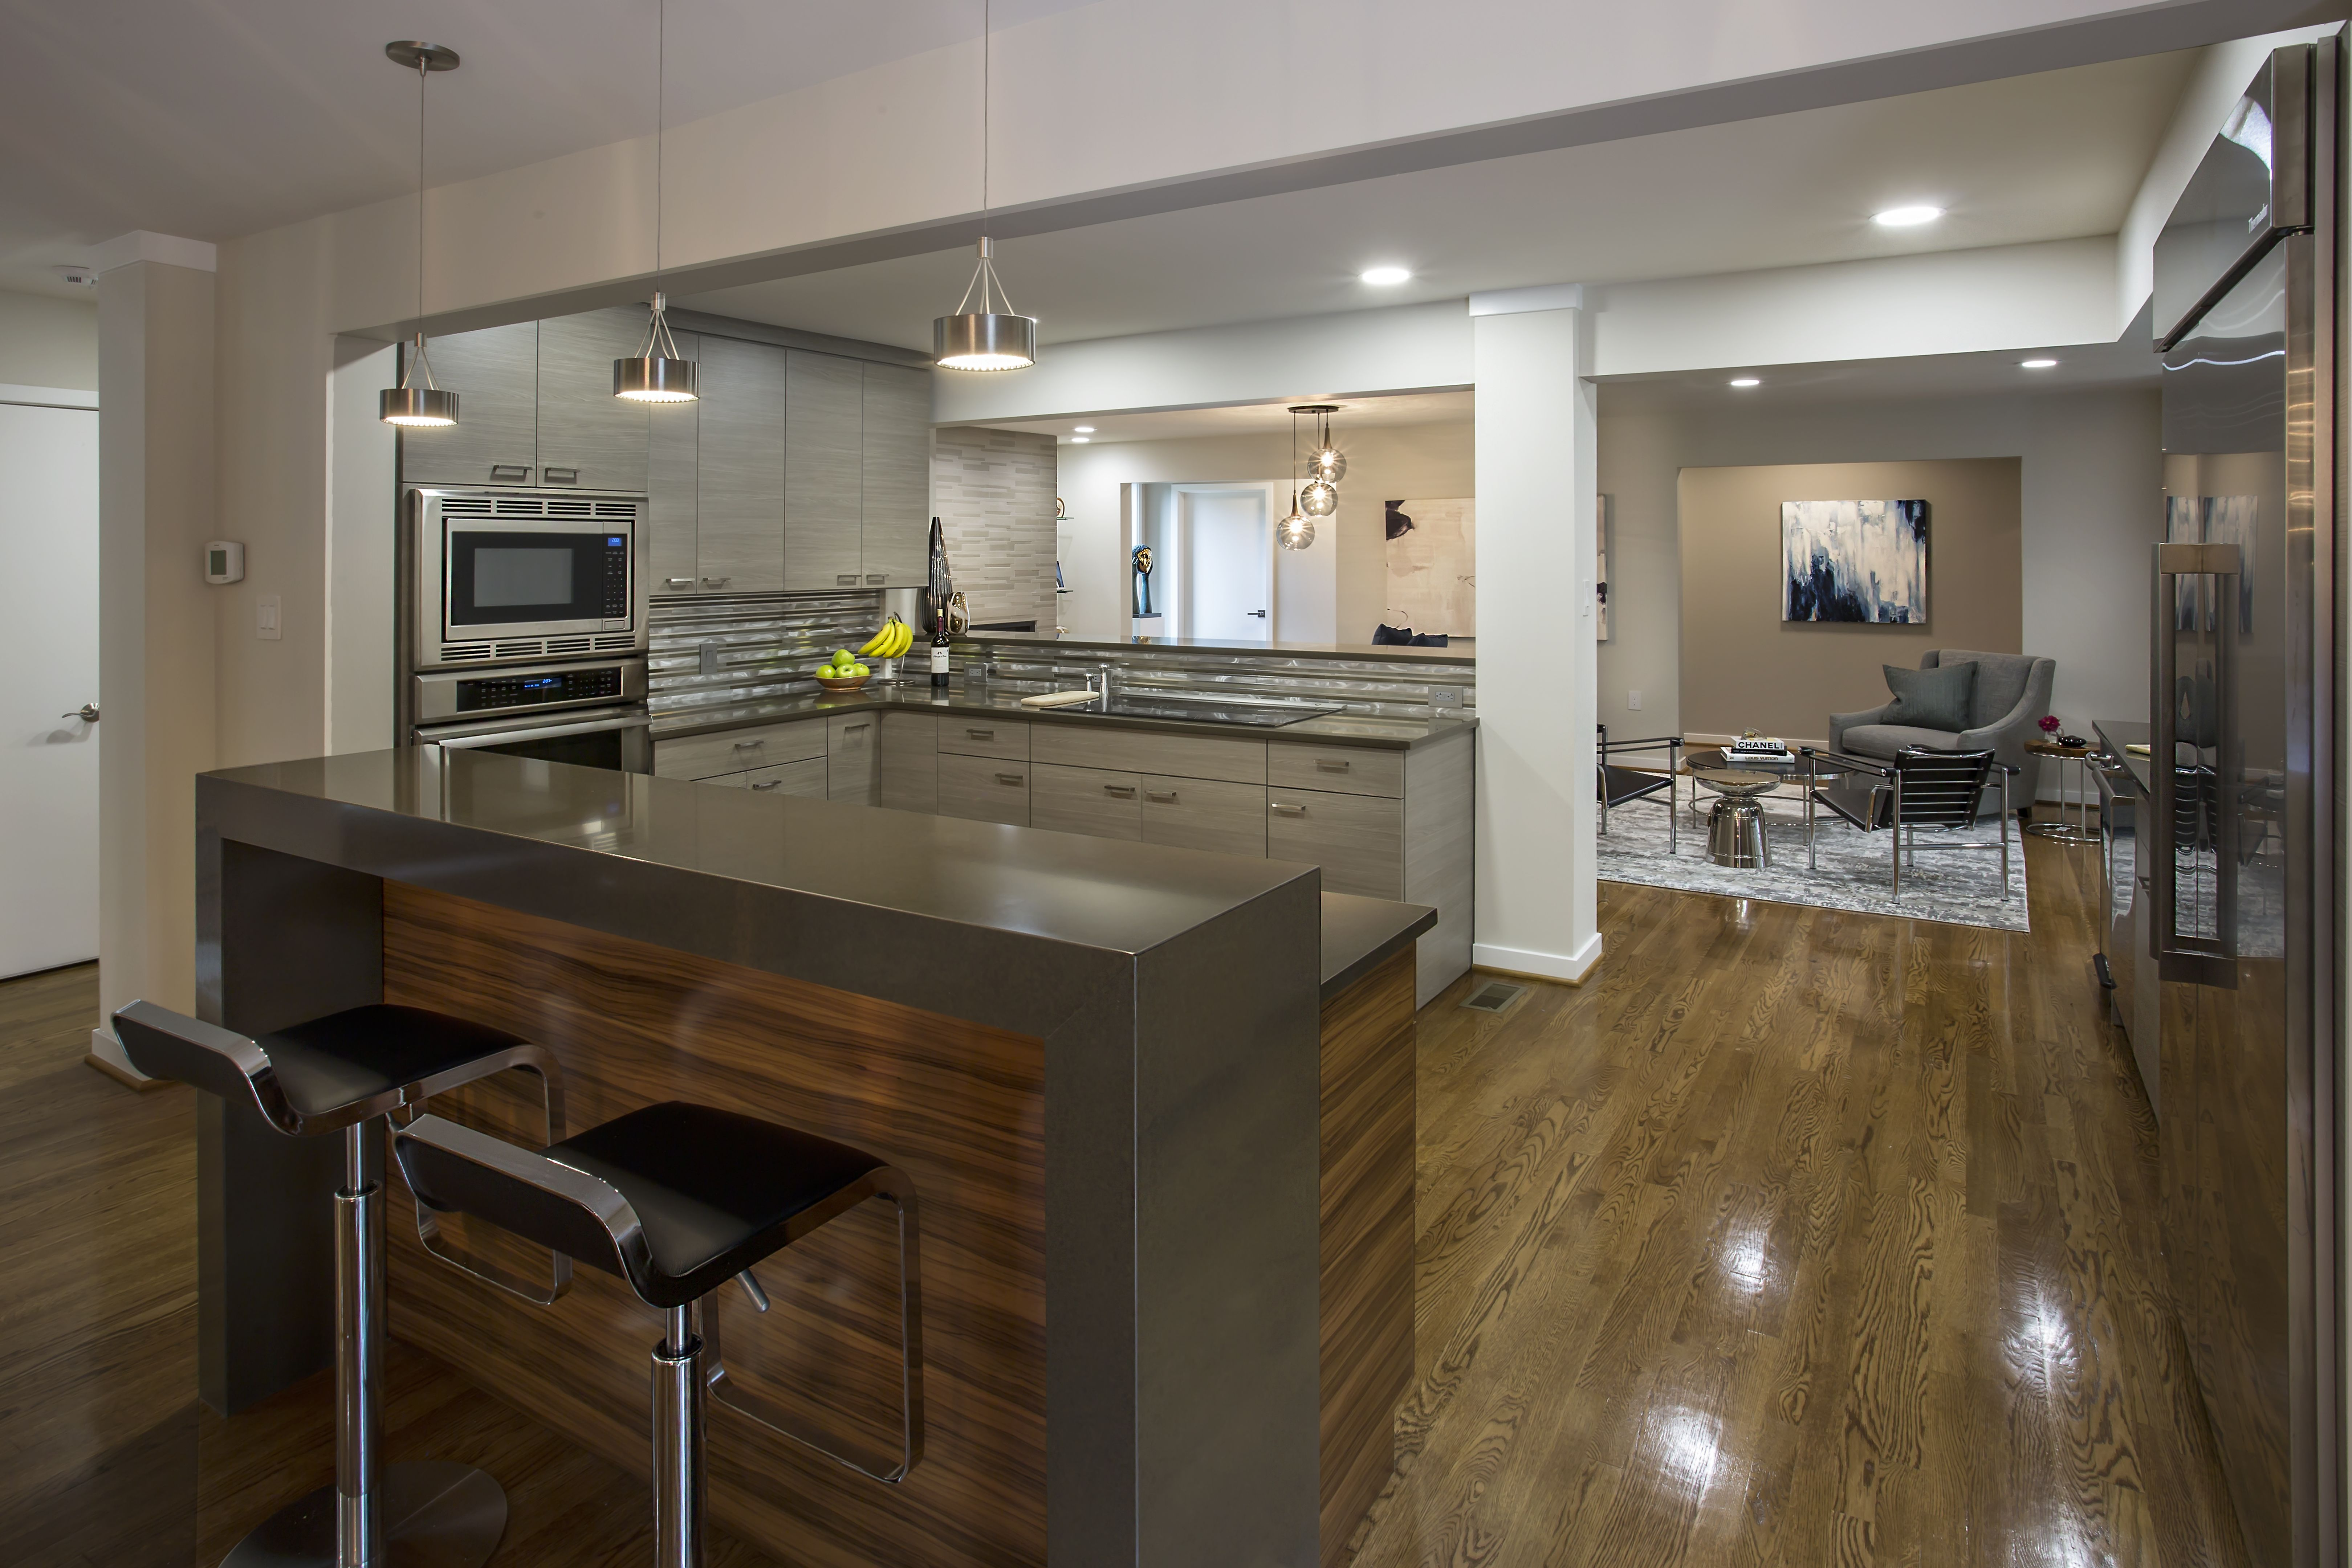 kitchen remodeling project by vmax llc in richmond,va | vmax homes